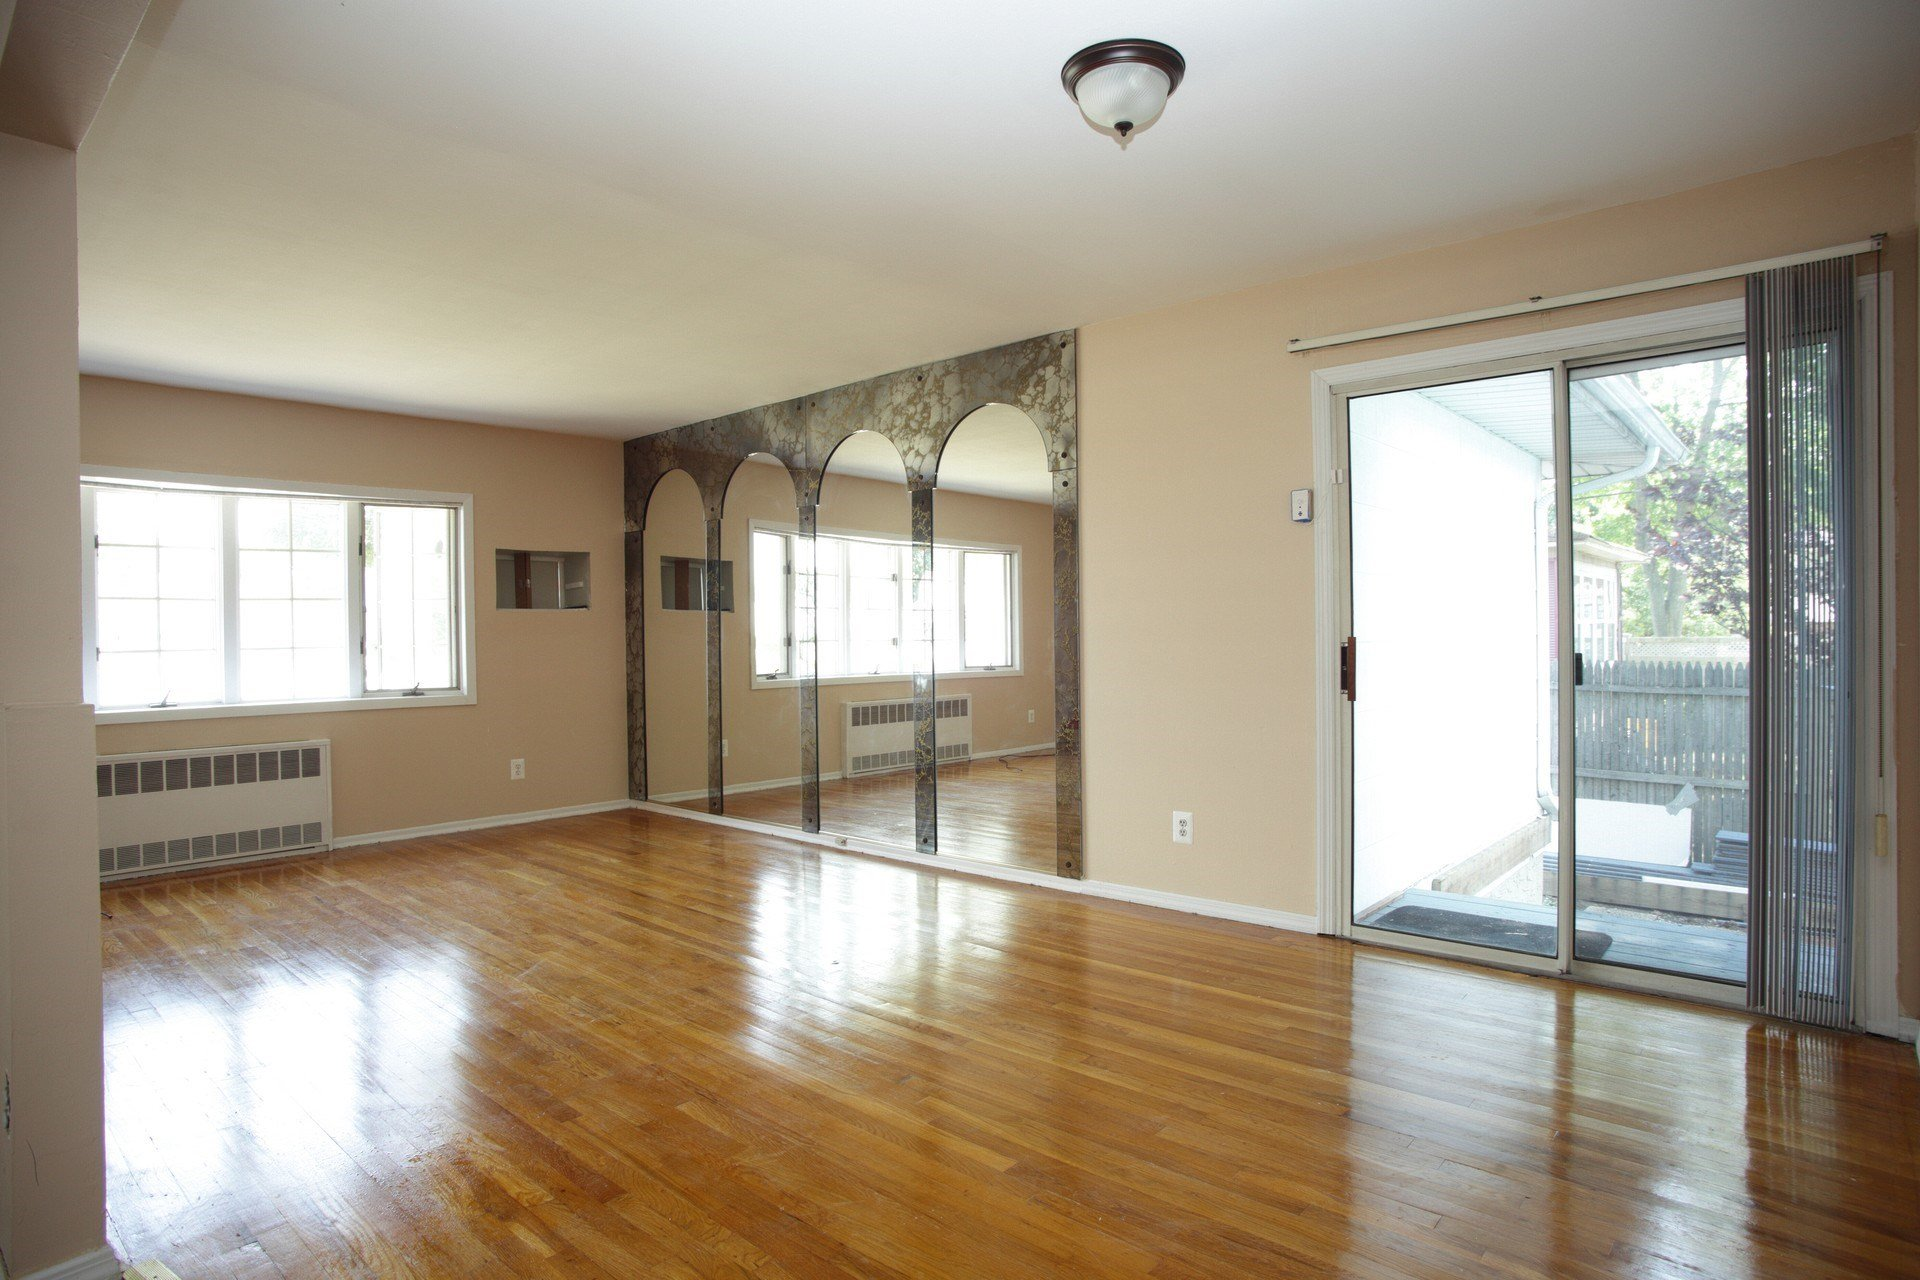 Best House For Rent In New York – Apartments Flats Commercial Space Individual House For Rentals With Pictures